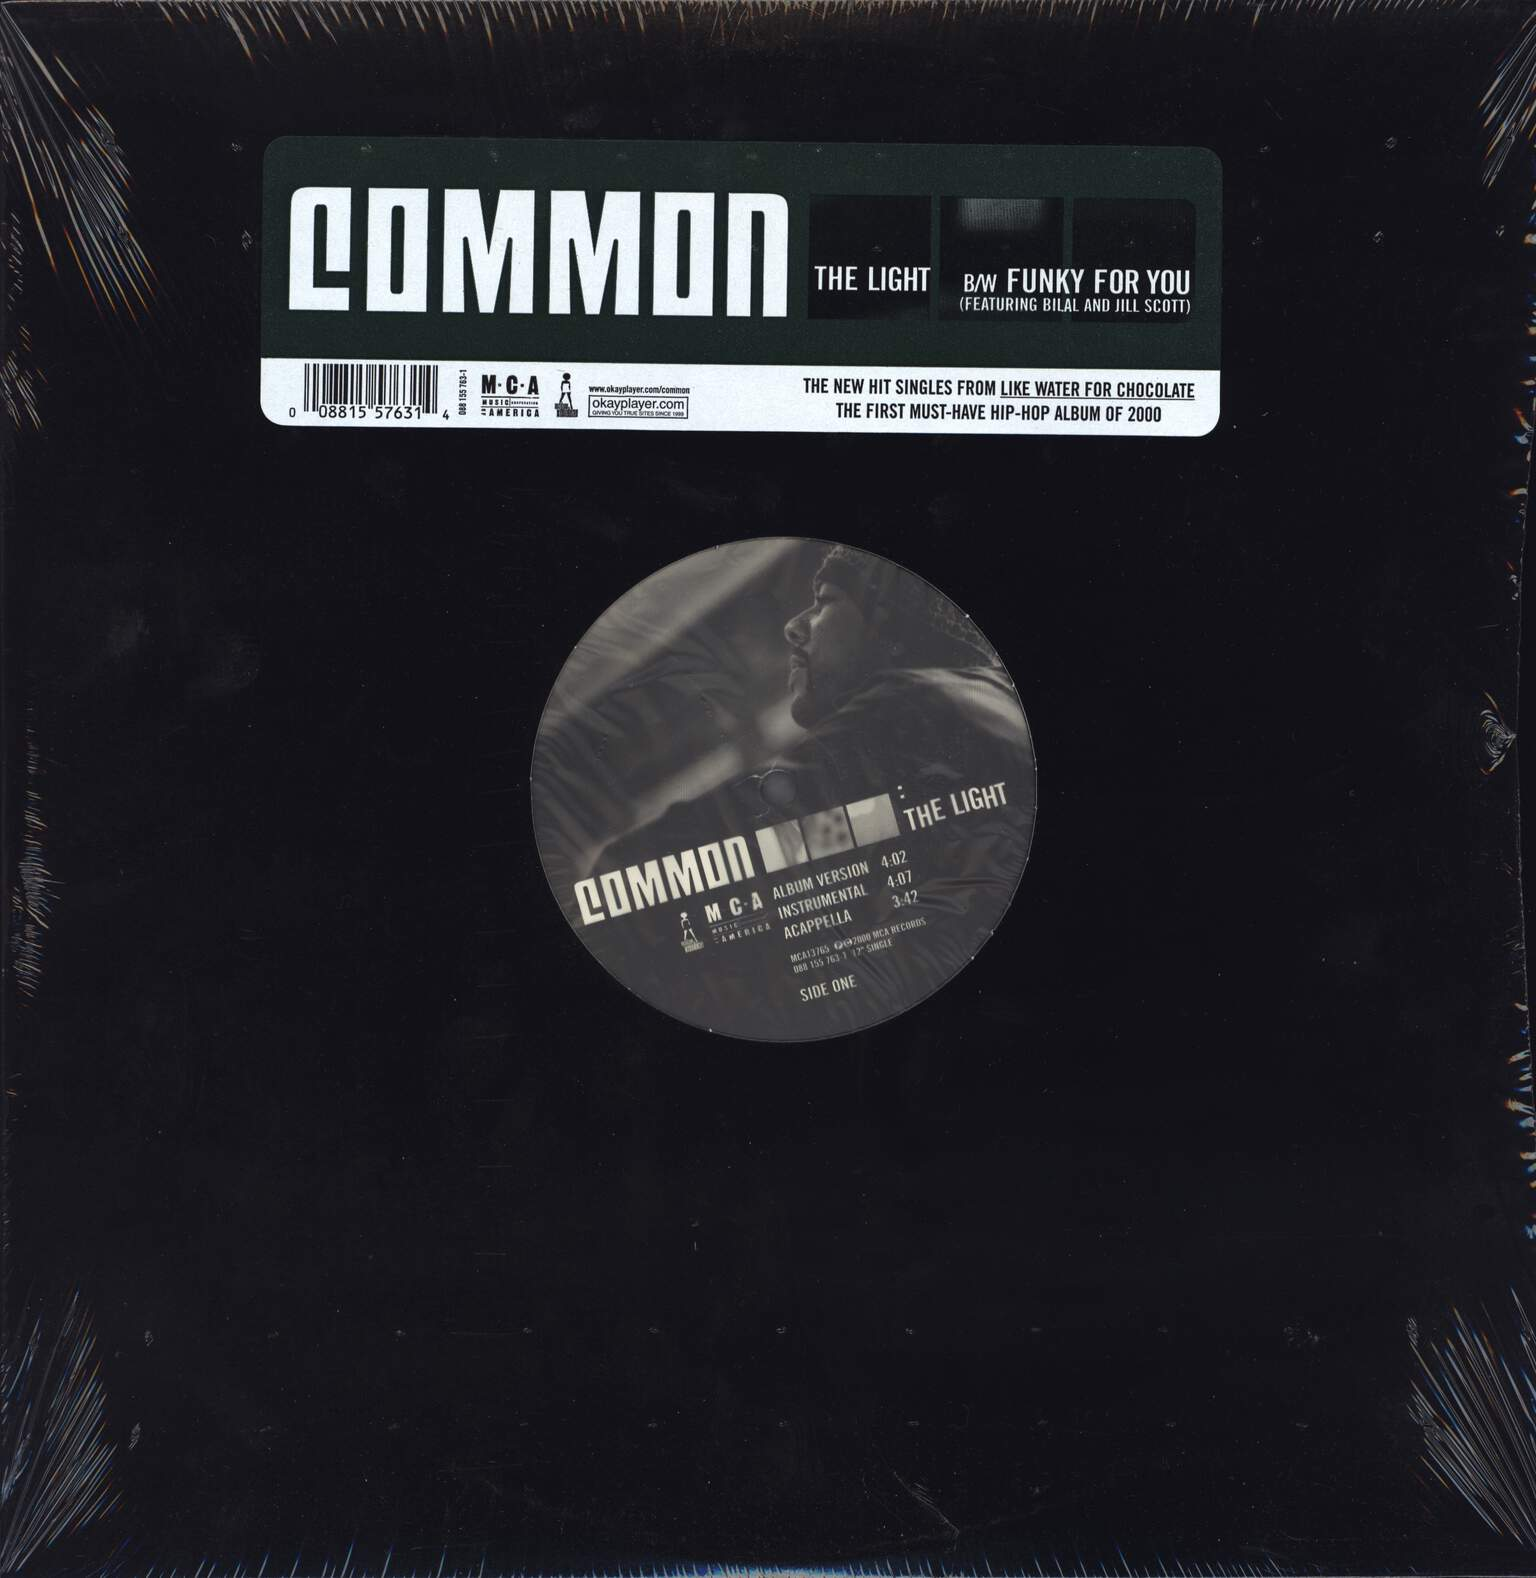 "Common: The Light / Funky For You, 12"" Maxi Single (Vinyl)"